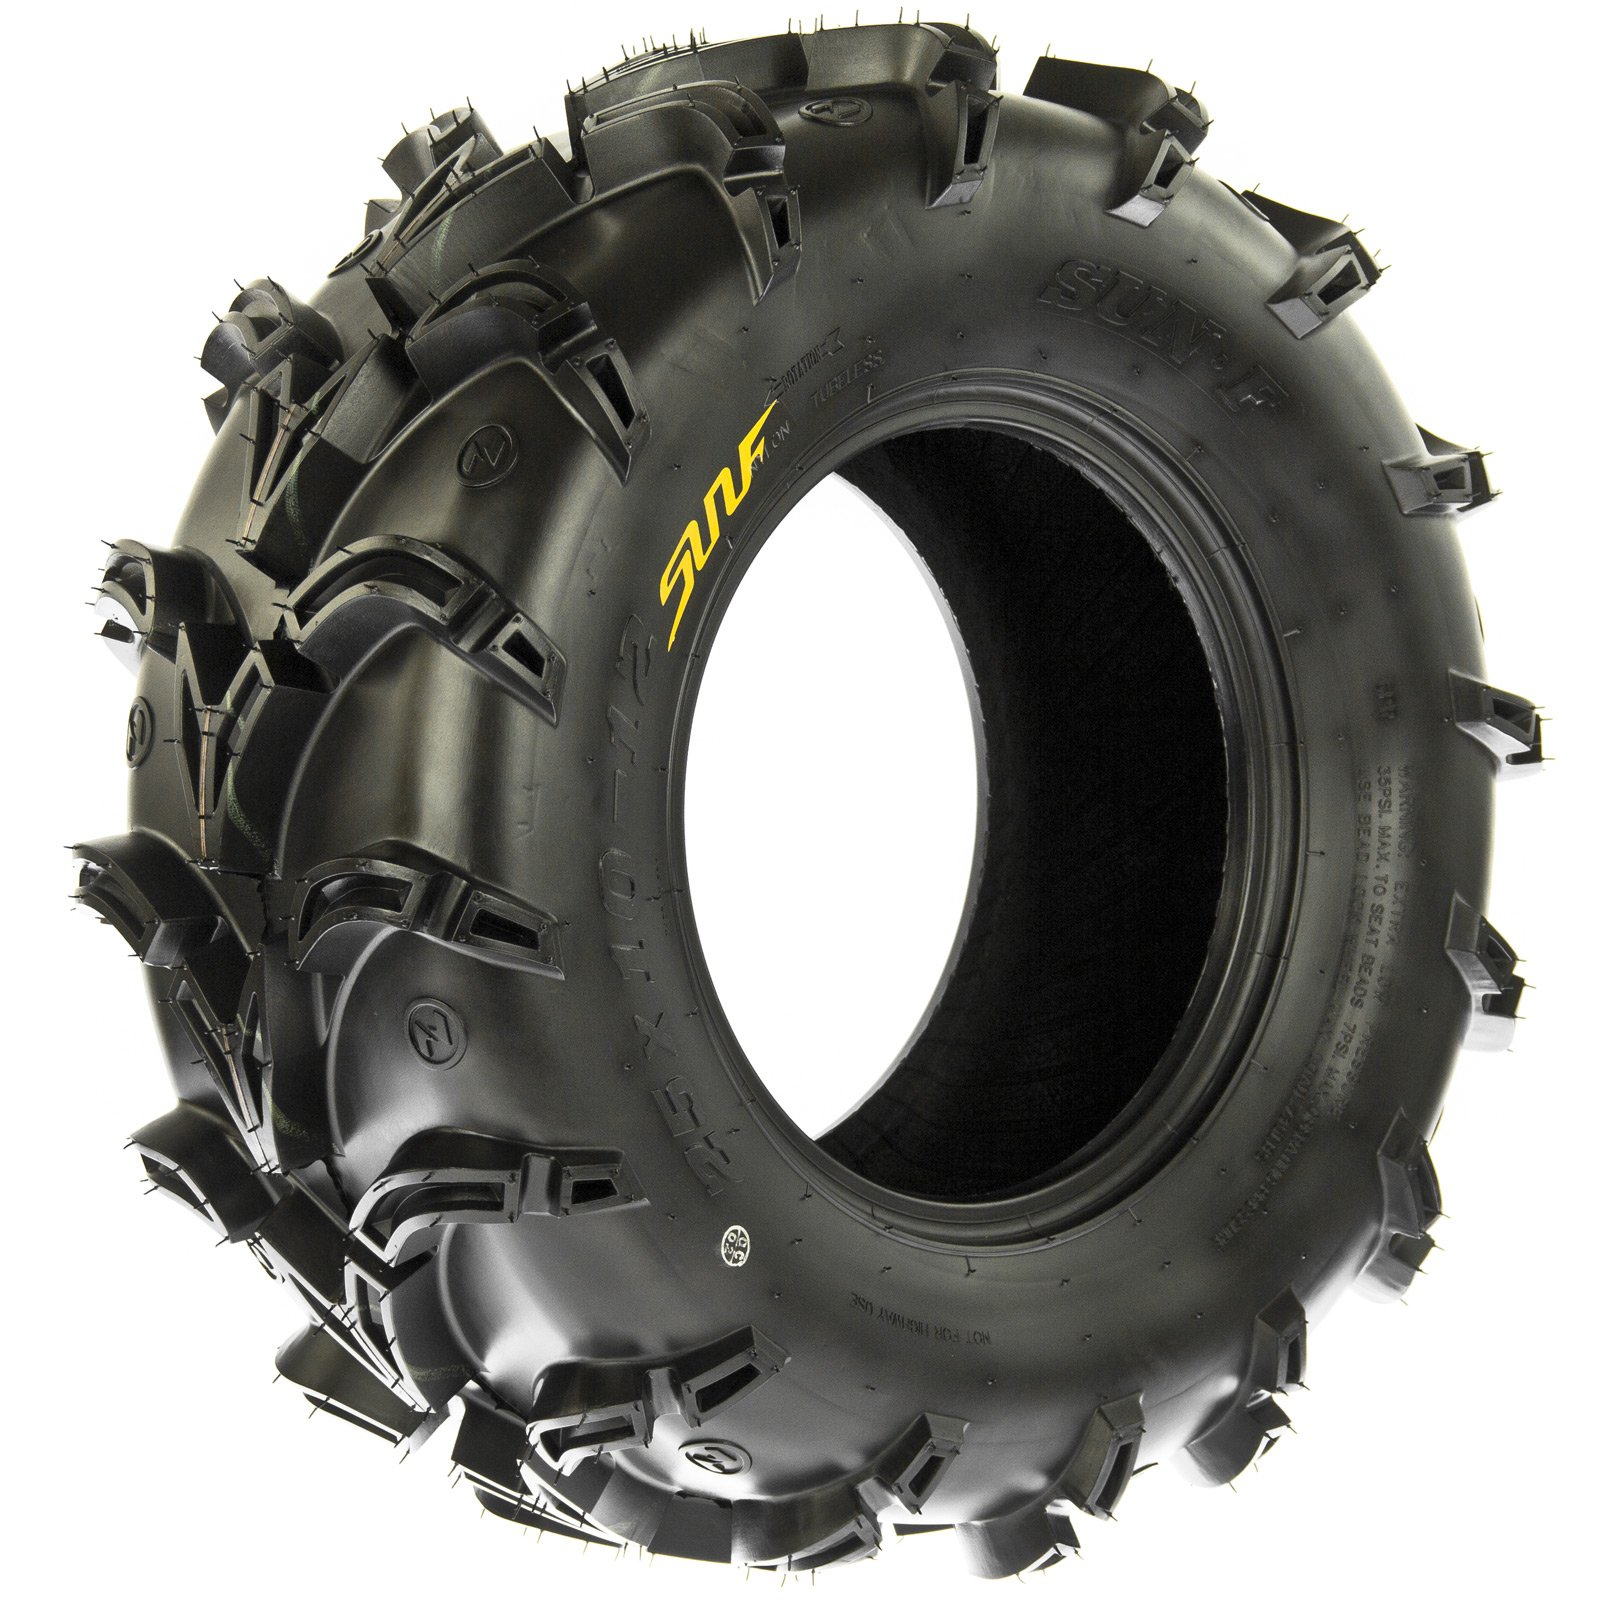 SunF A050 AT Mud & Trail 25x11-10 ATV UTV Tires, 6PR, Tubeless by SunF (Image #8)